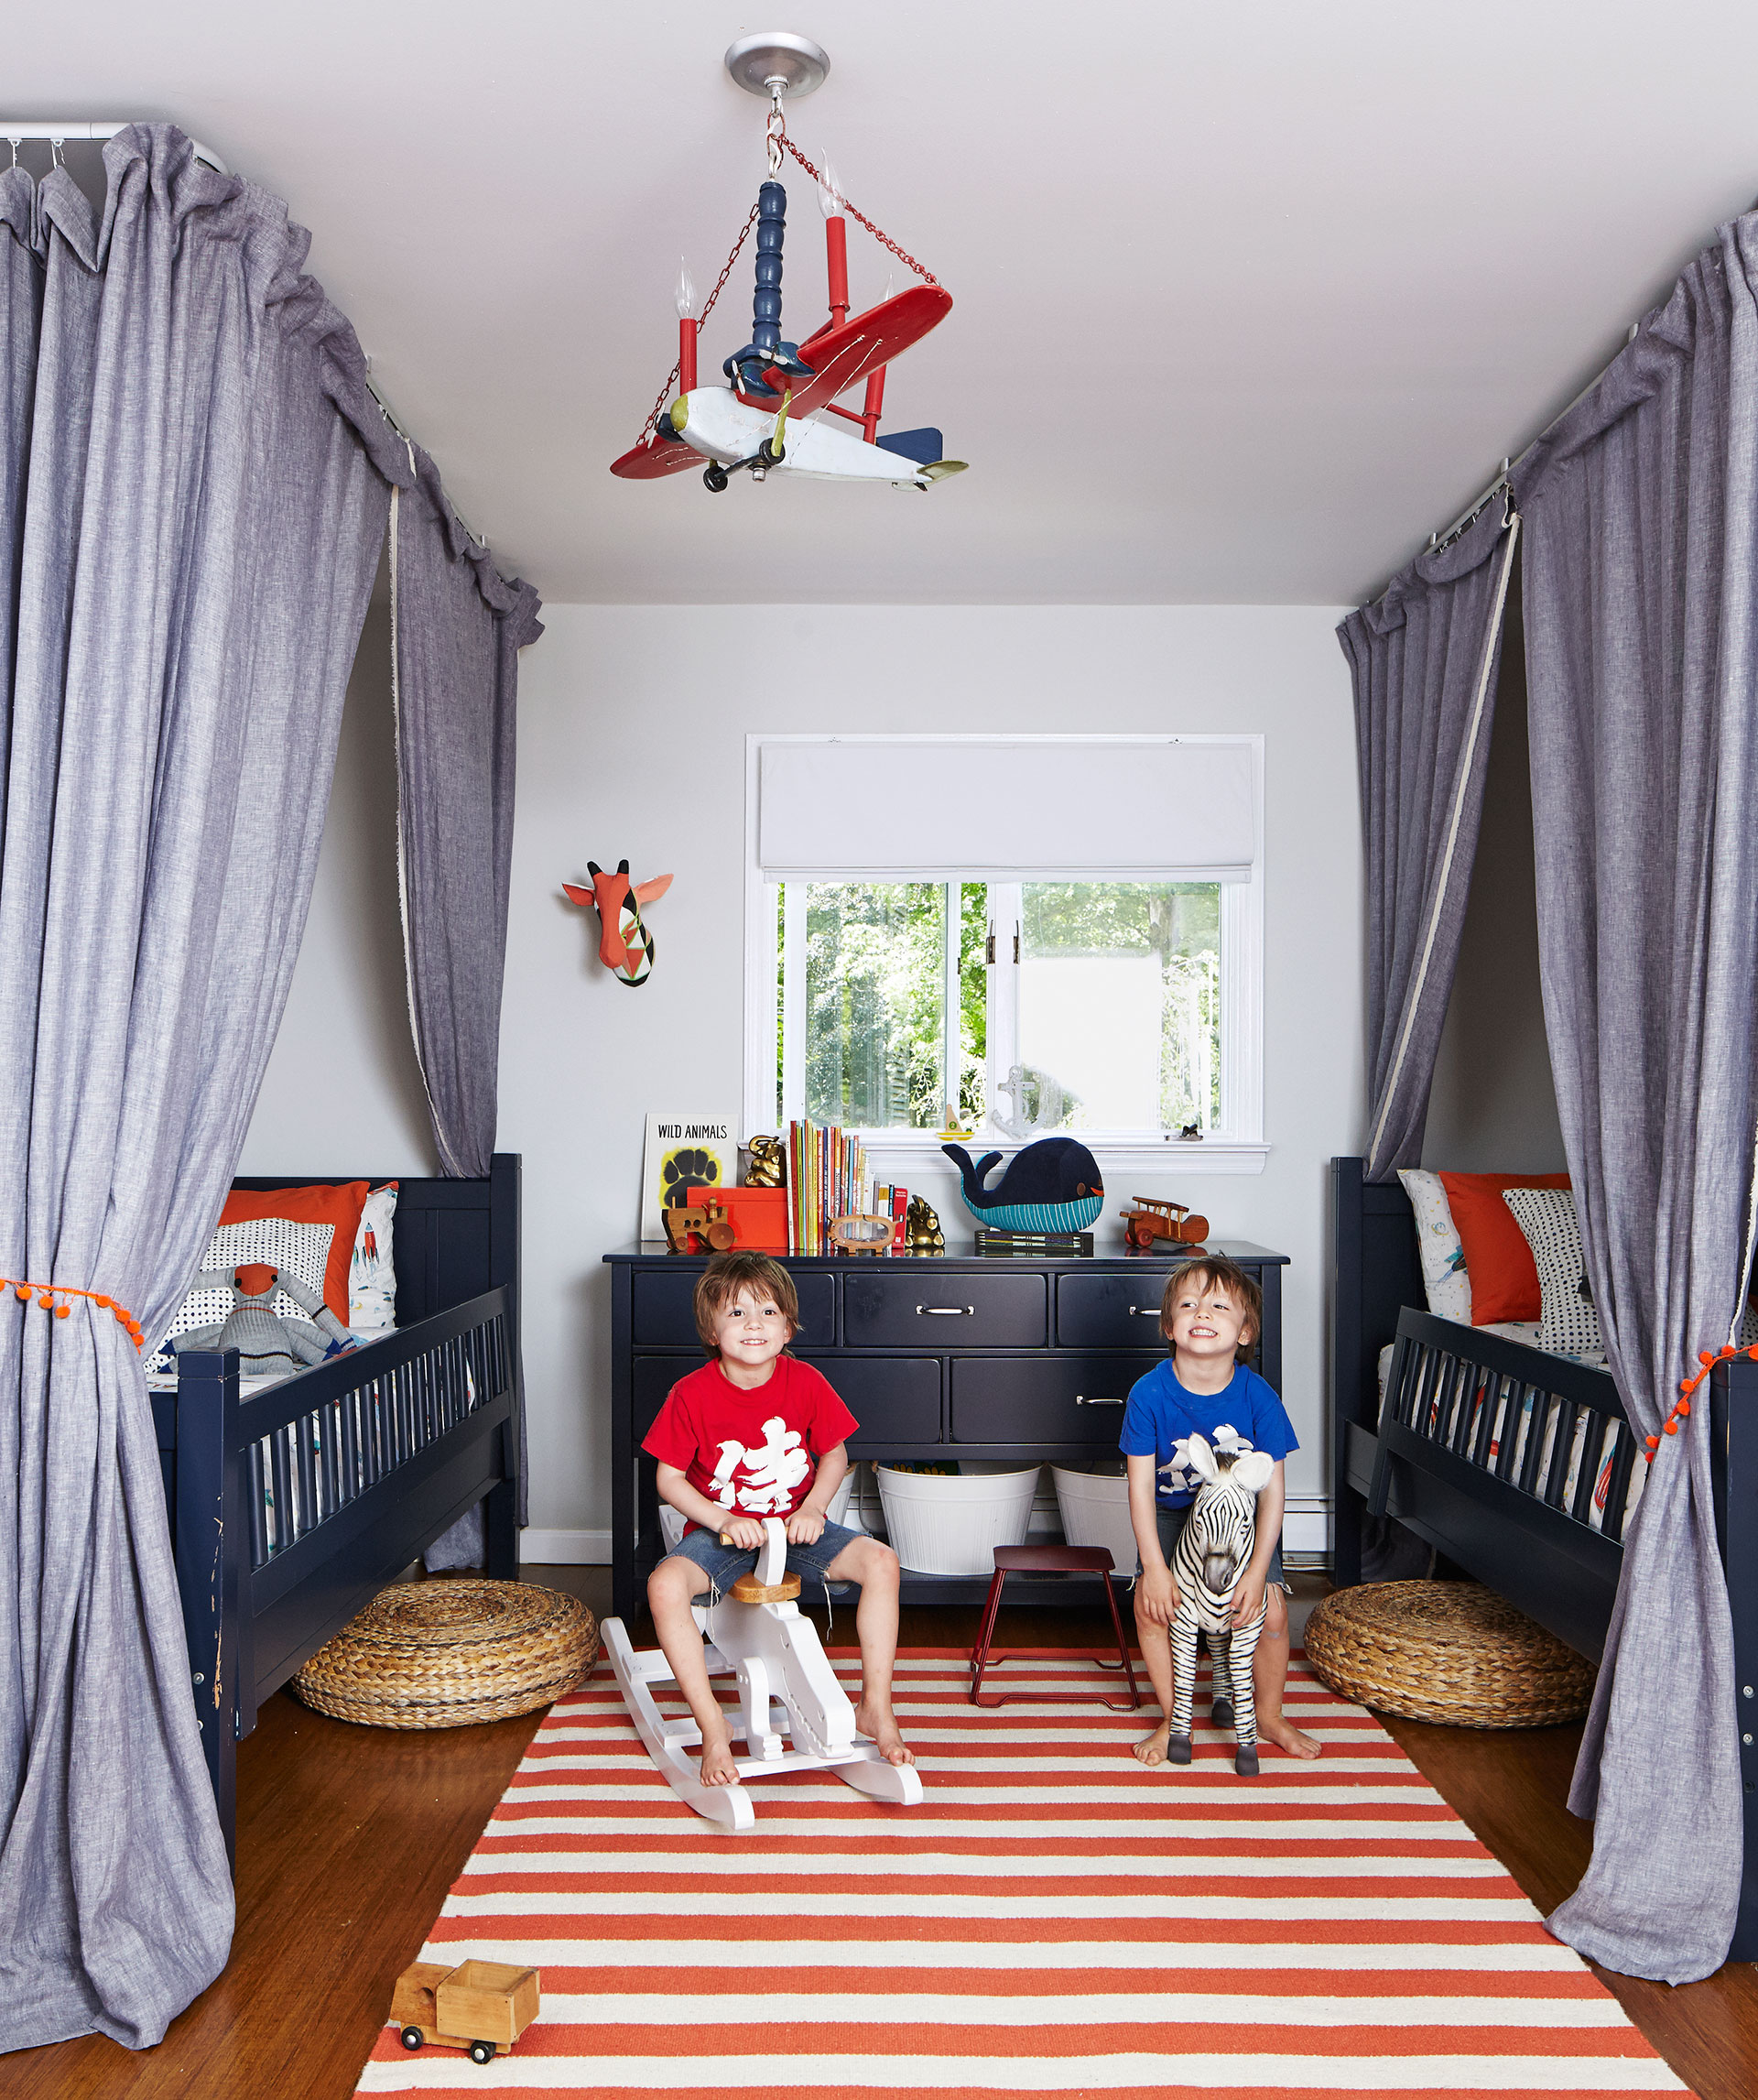 Kids Room Decor Ideas Bedroom Design And Decorating For Kids